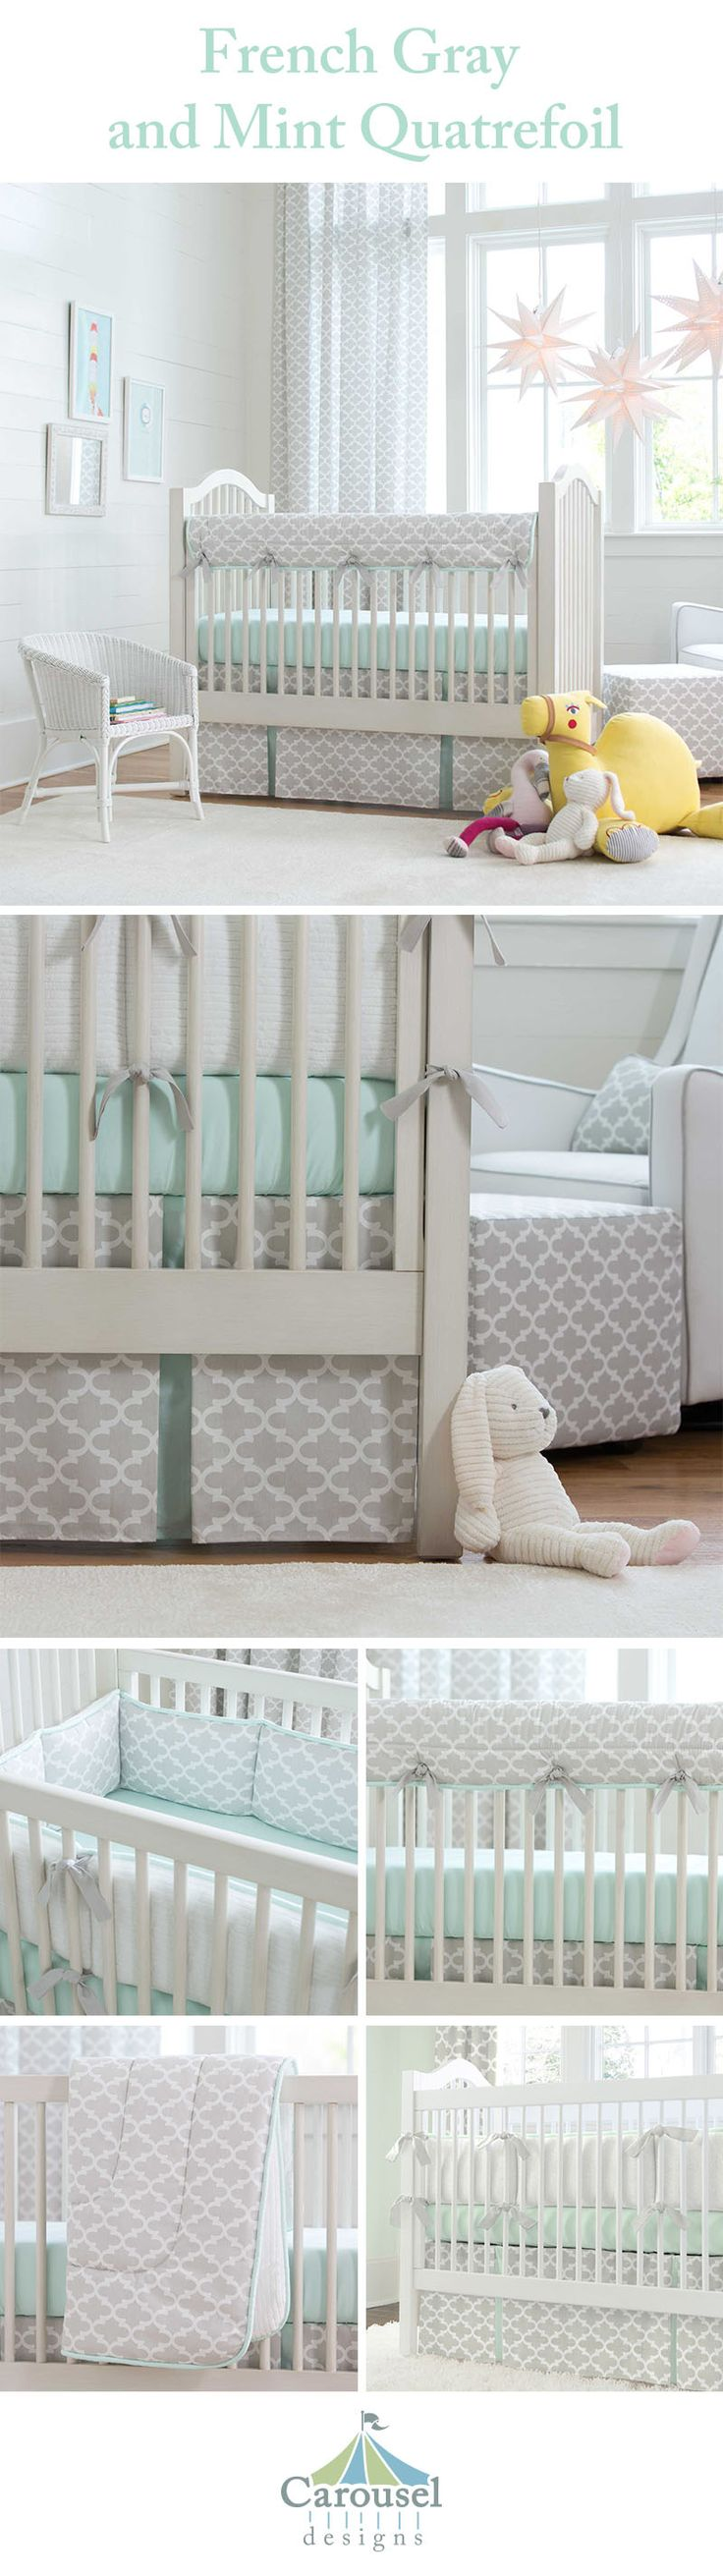 49 best mint nursery images on pinterest carousel designs mint